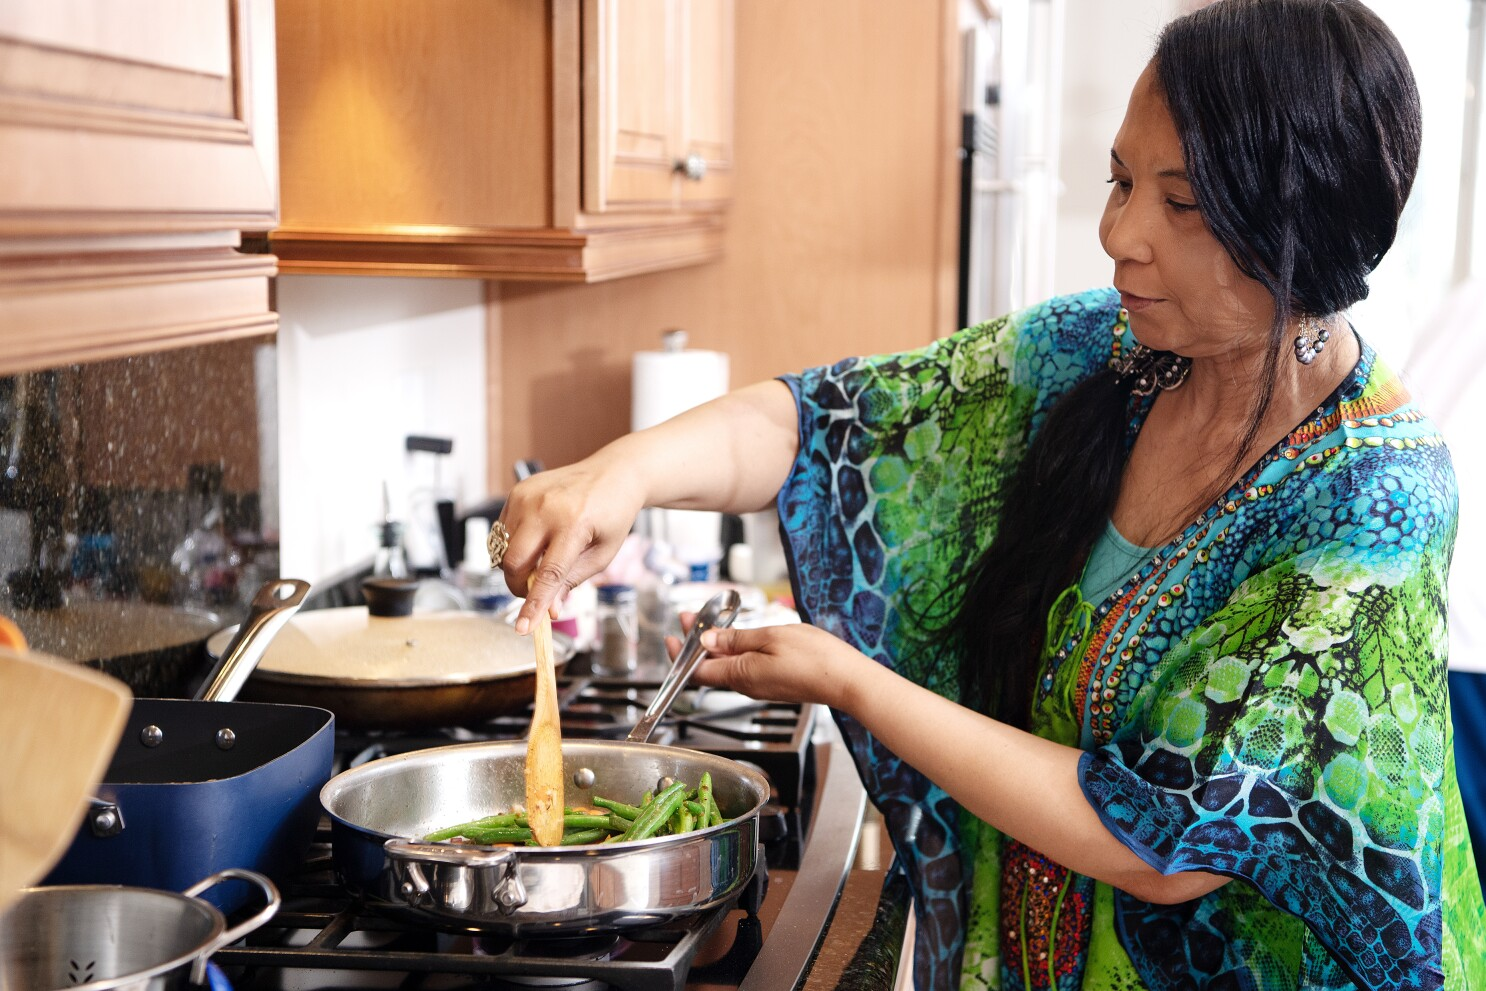 Chefs and cooks in the disability community share recipes - Los Angeles  Times